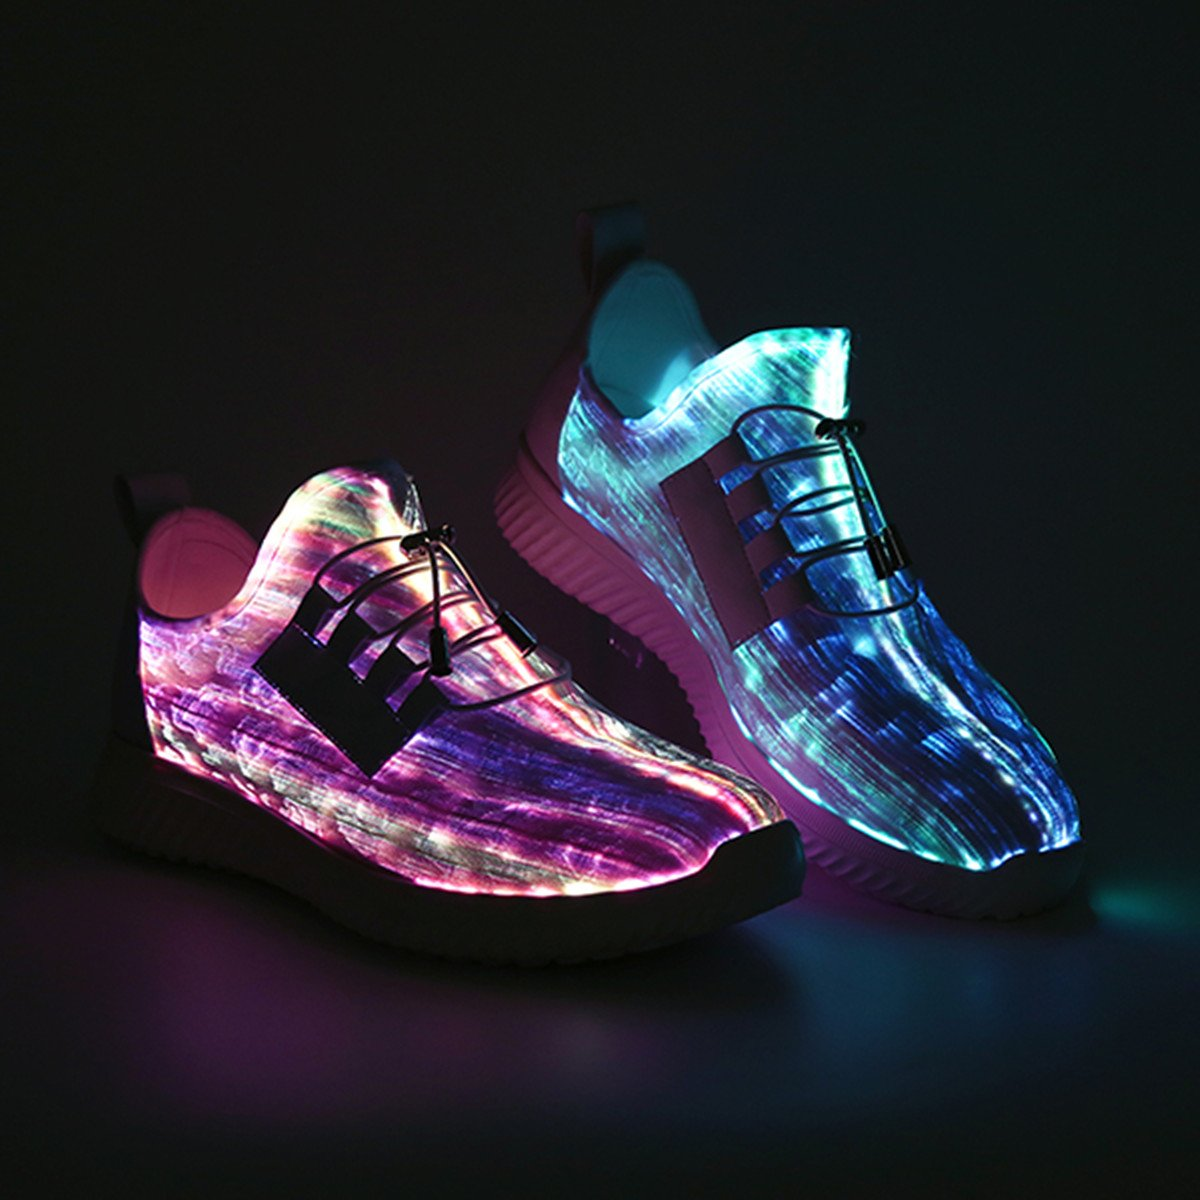 Light up Sneakers for Women USB Charging Fashion LED Flashing Trainer Summer Outdoor Casual Lace up Shoes